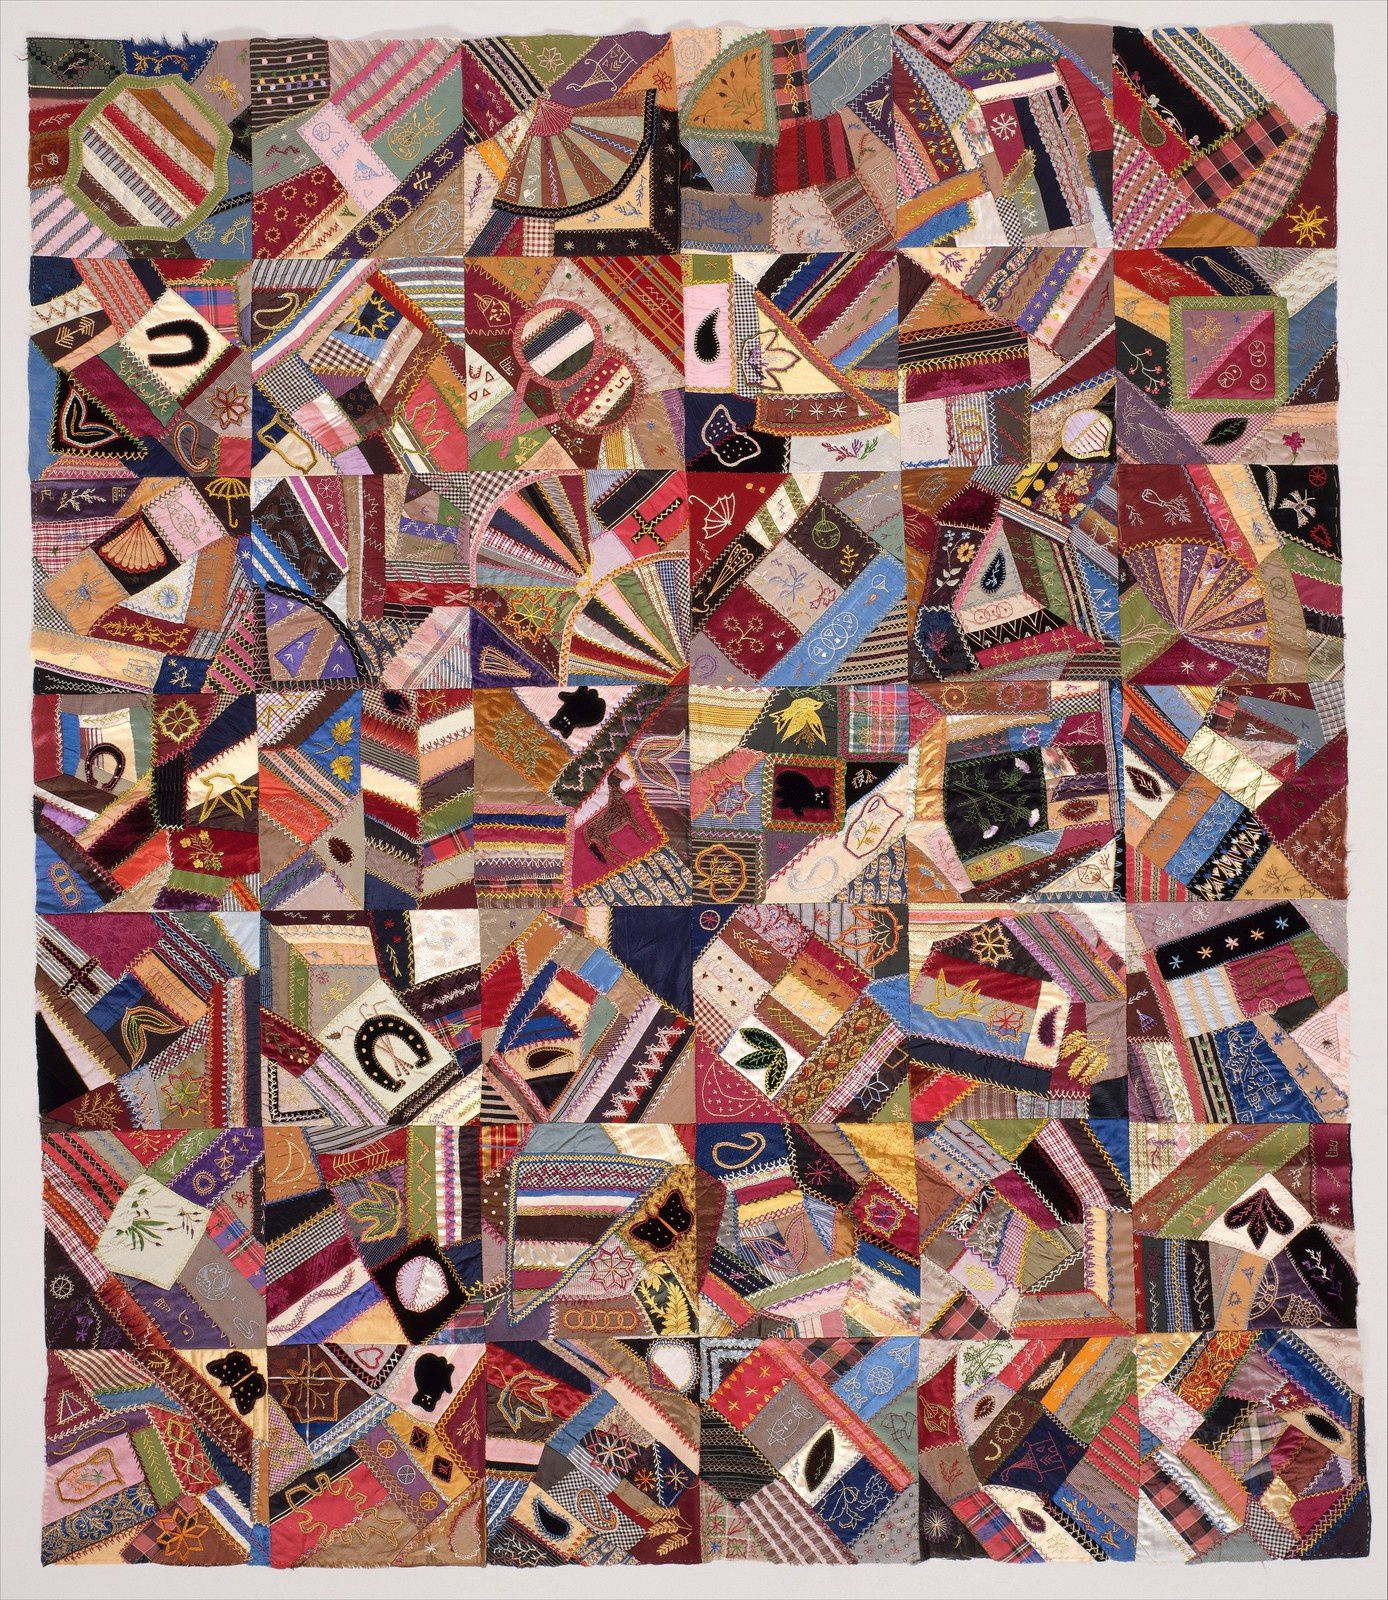 Quilt Top, Crazy pattern, ca. 1885, Silk, satin, velvet, and cotton, 60 3/4 x 52 in. (154,3 x 132,1 cm)